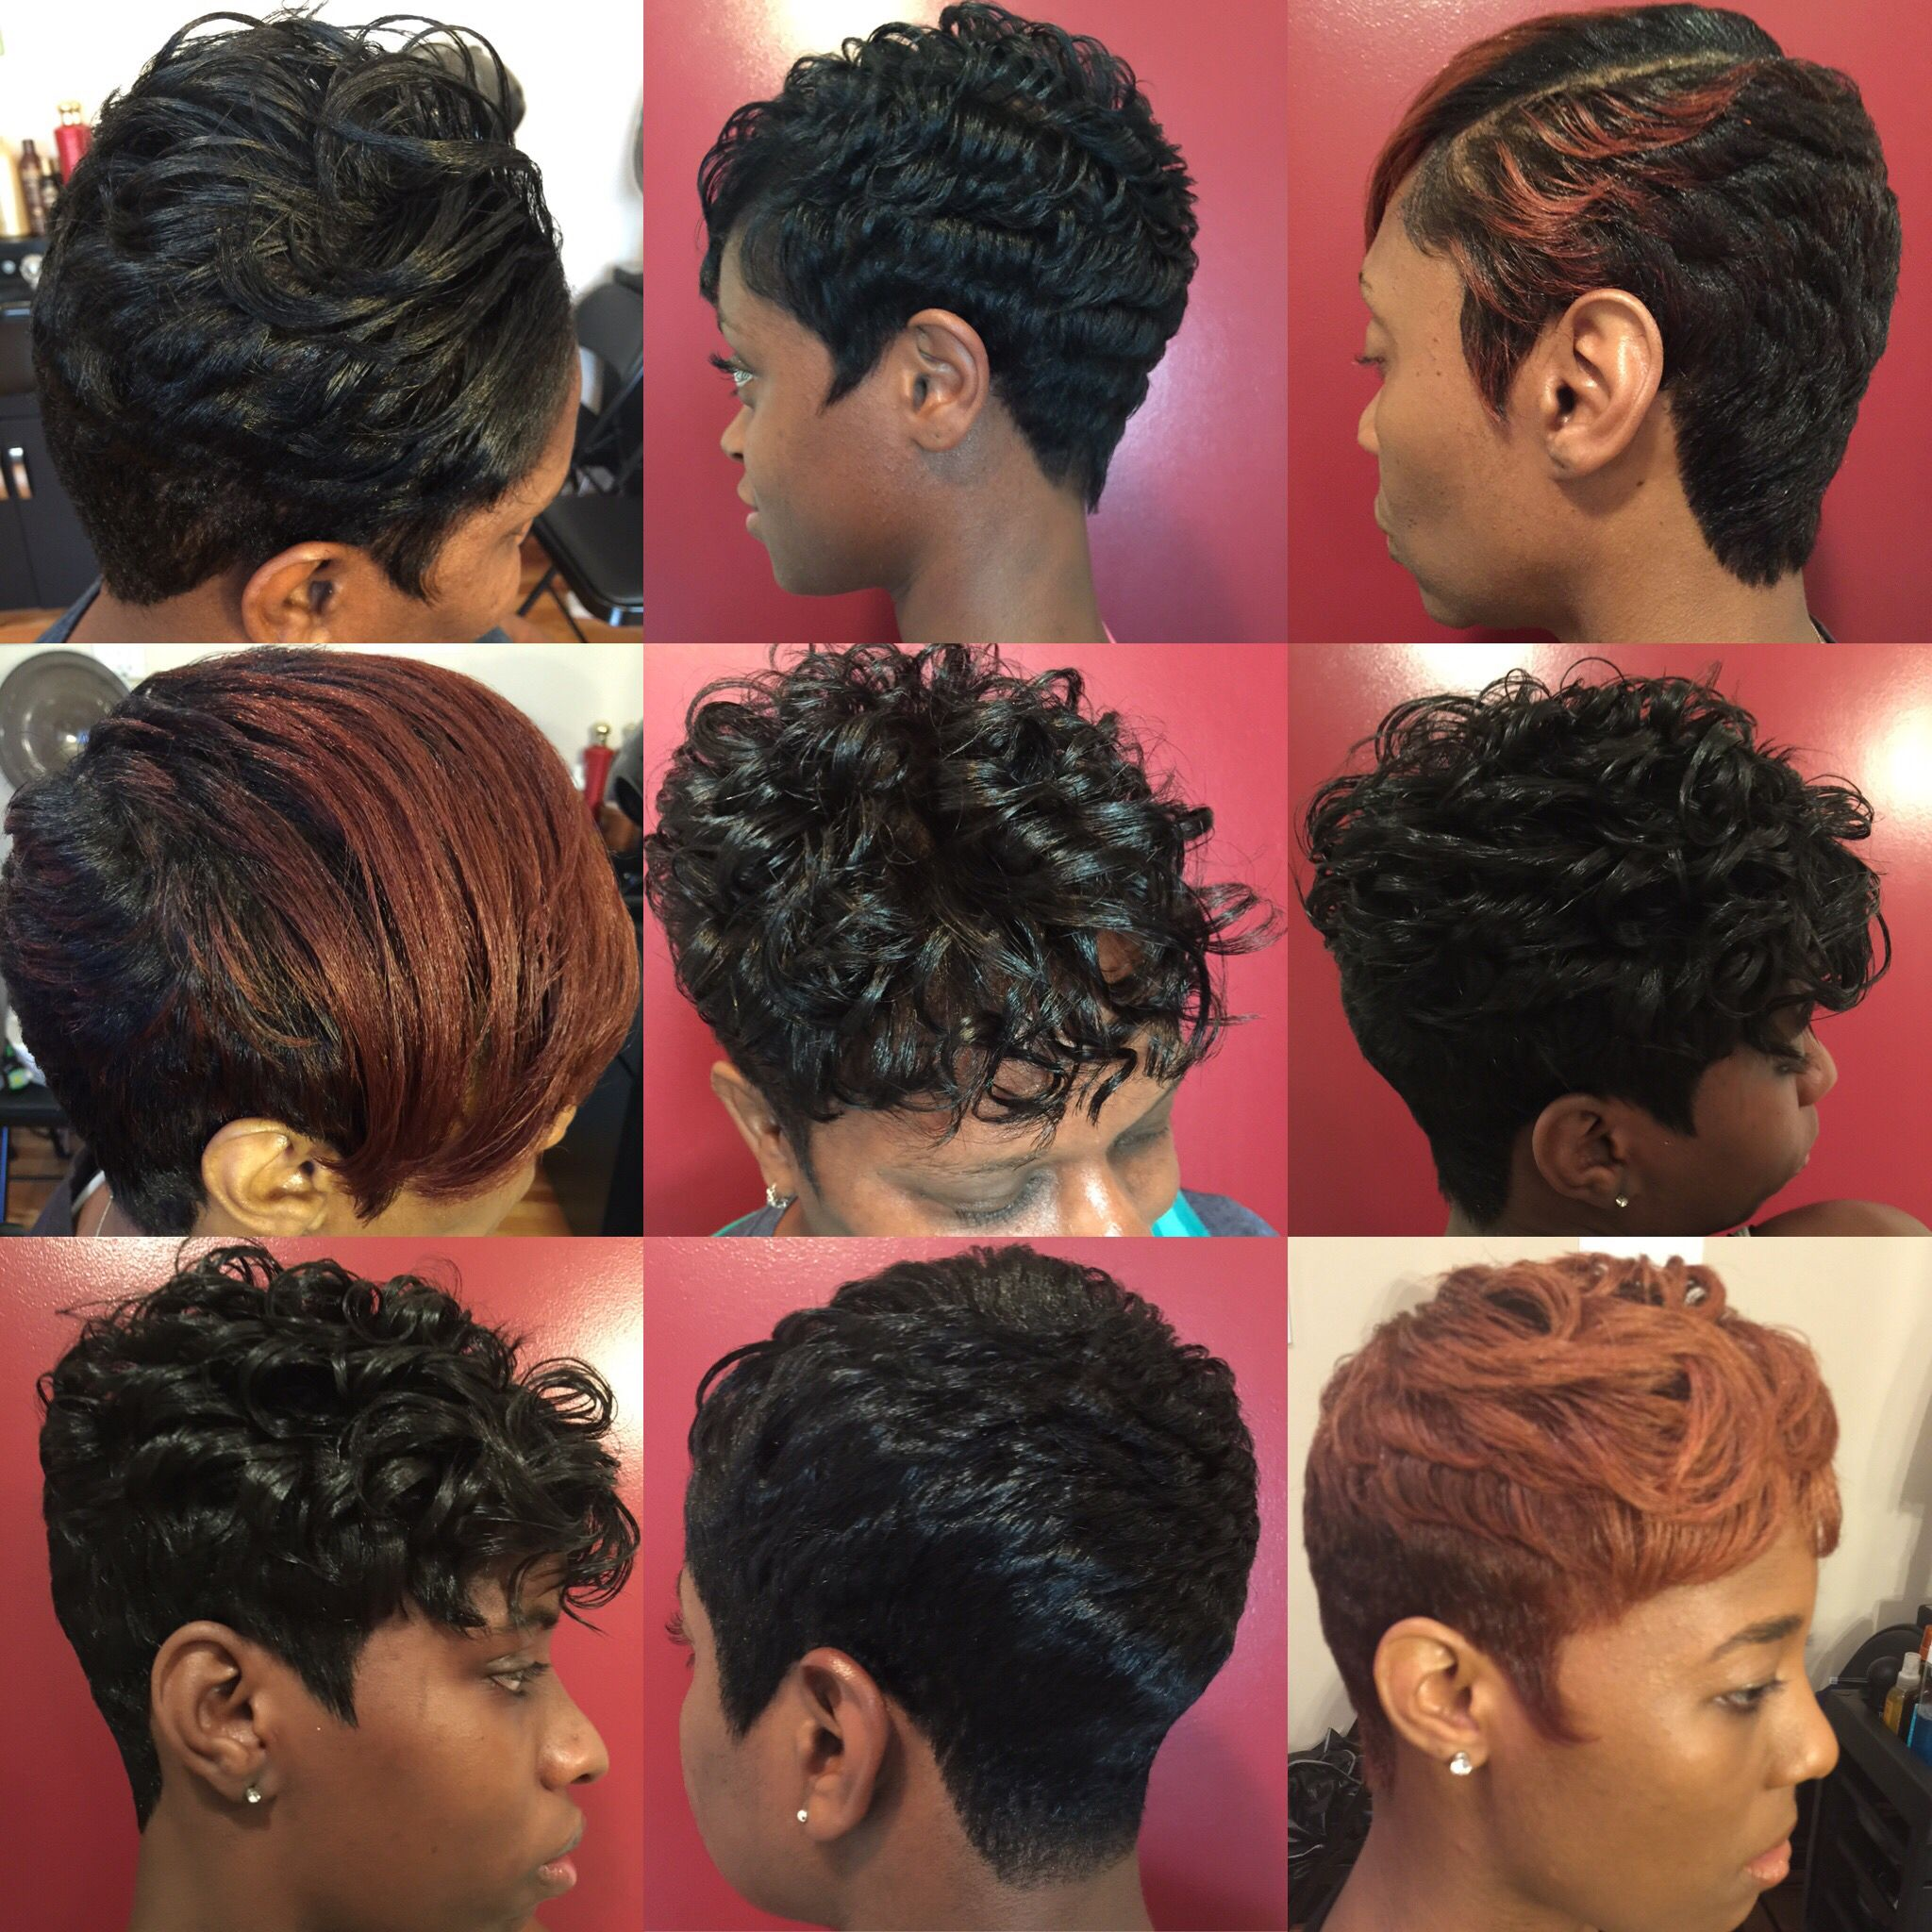 Hair By Raijona Serenity Hair Studio Short Hair Styles Short Permed Hair Hair Styles